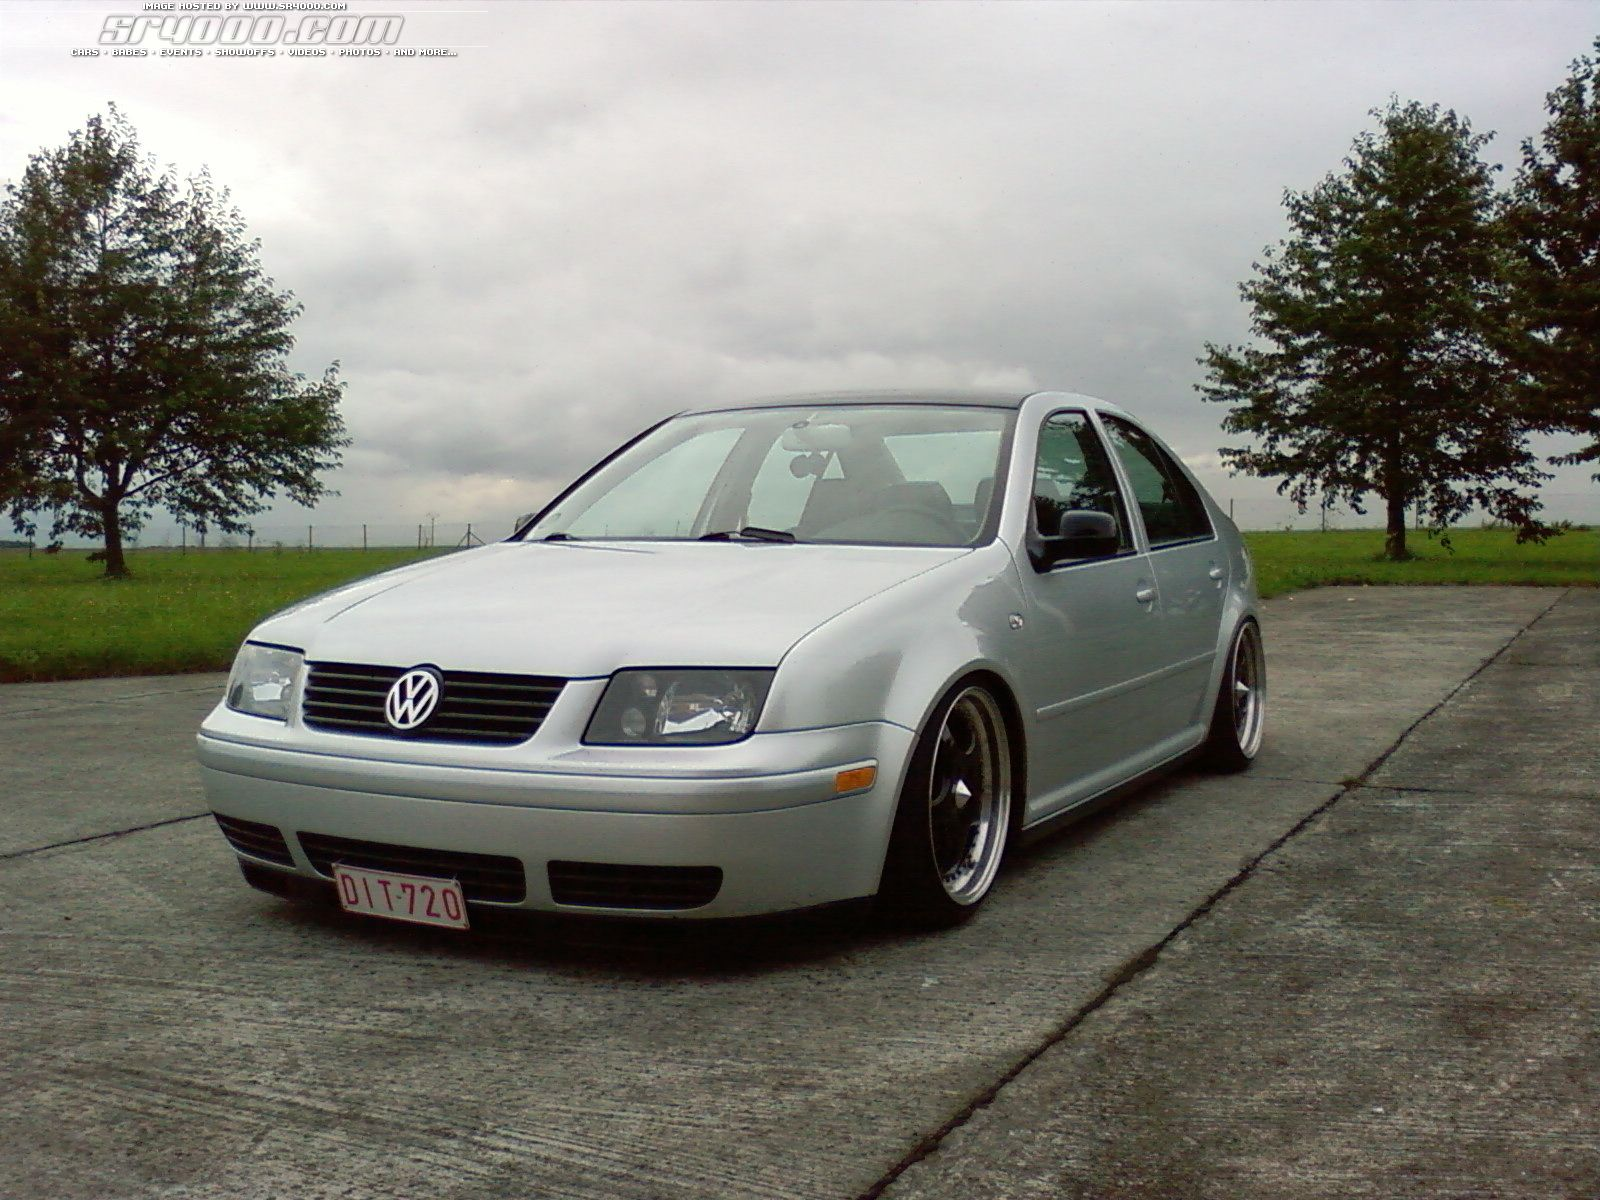 VW Bora photo 13